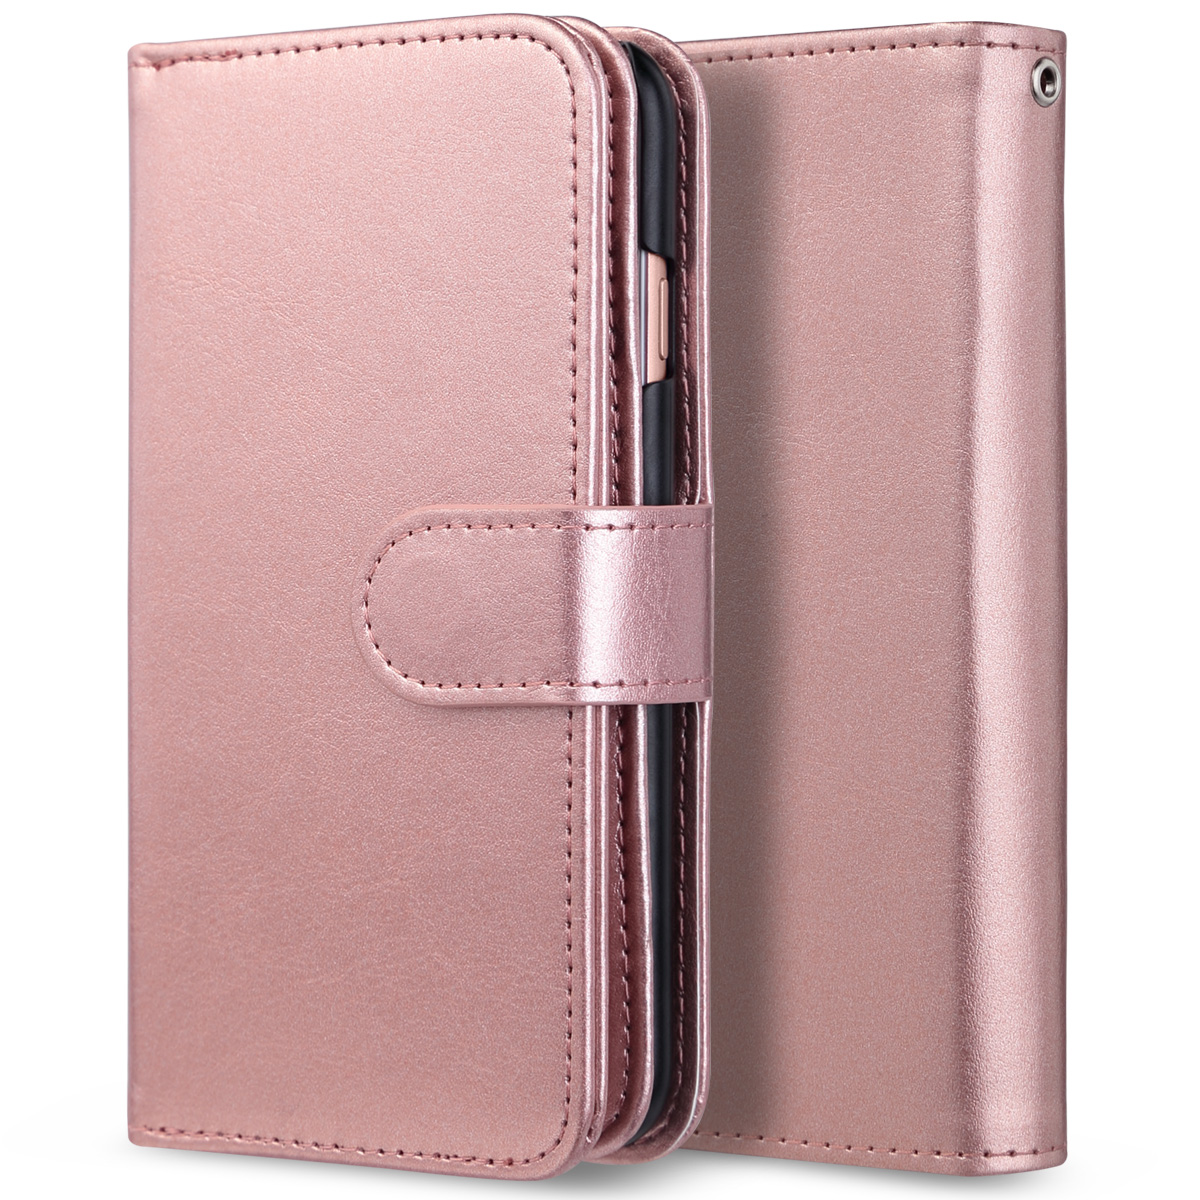 Luxury Magnetic Wallet Leather Slim Card Pocket Case For